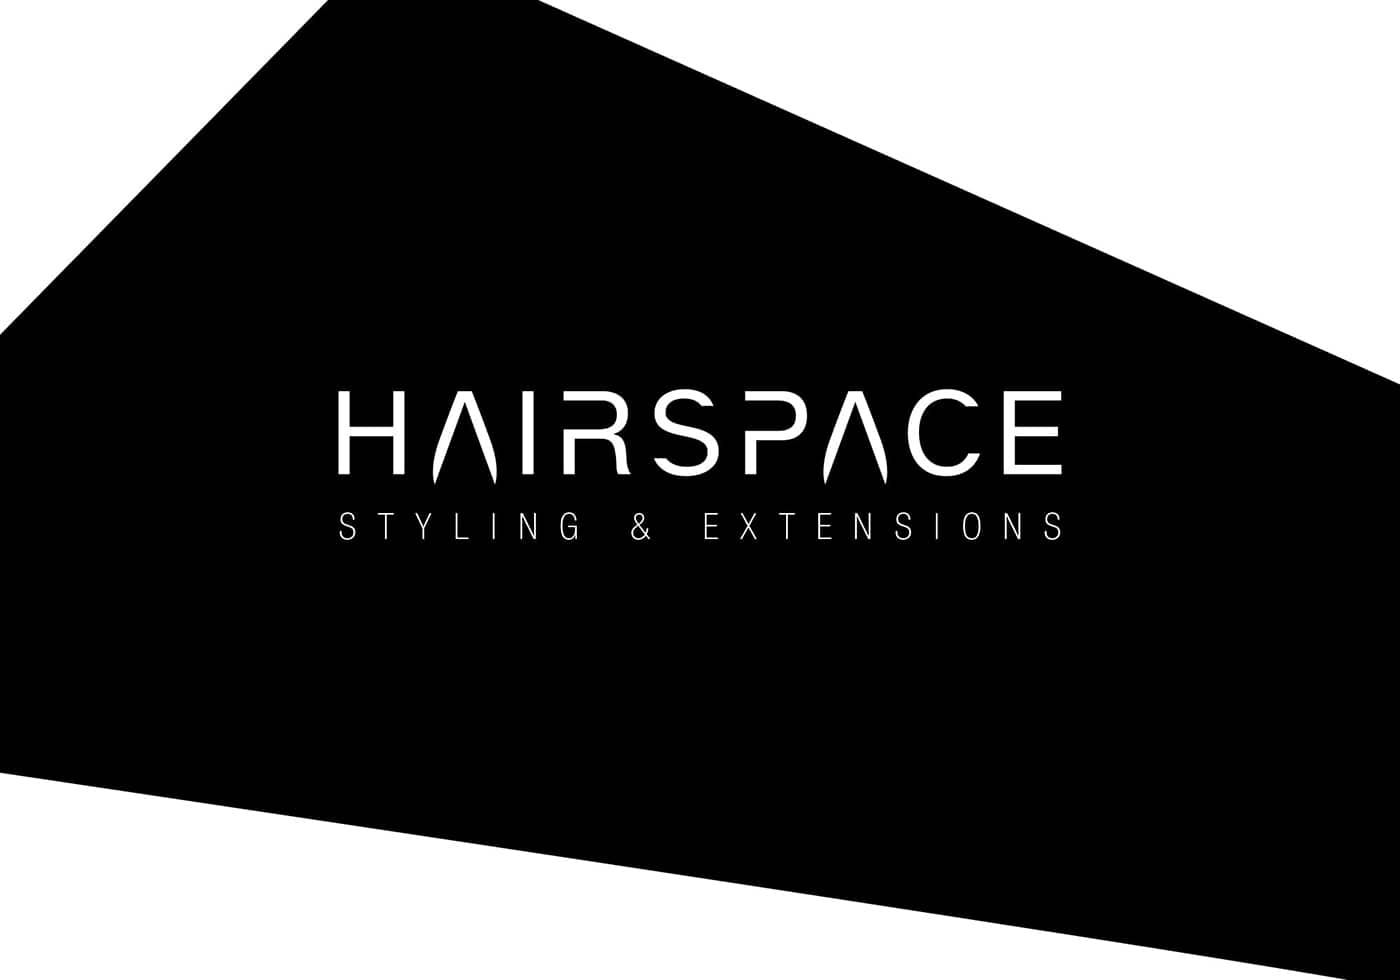 Hairspace logo design black and white